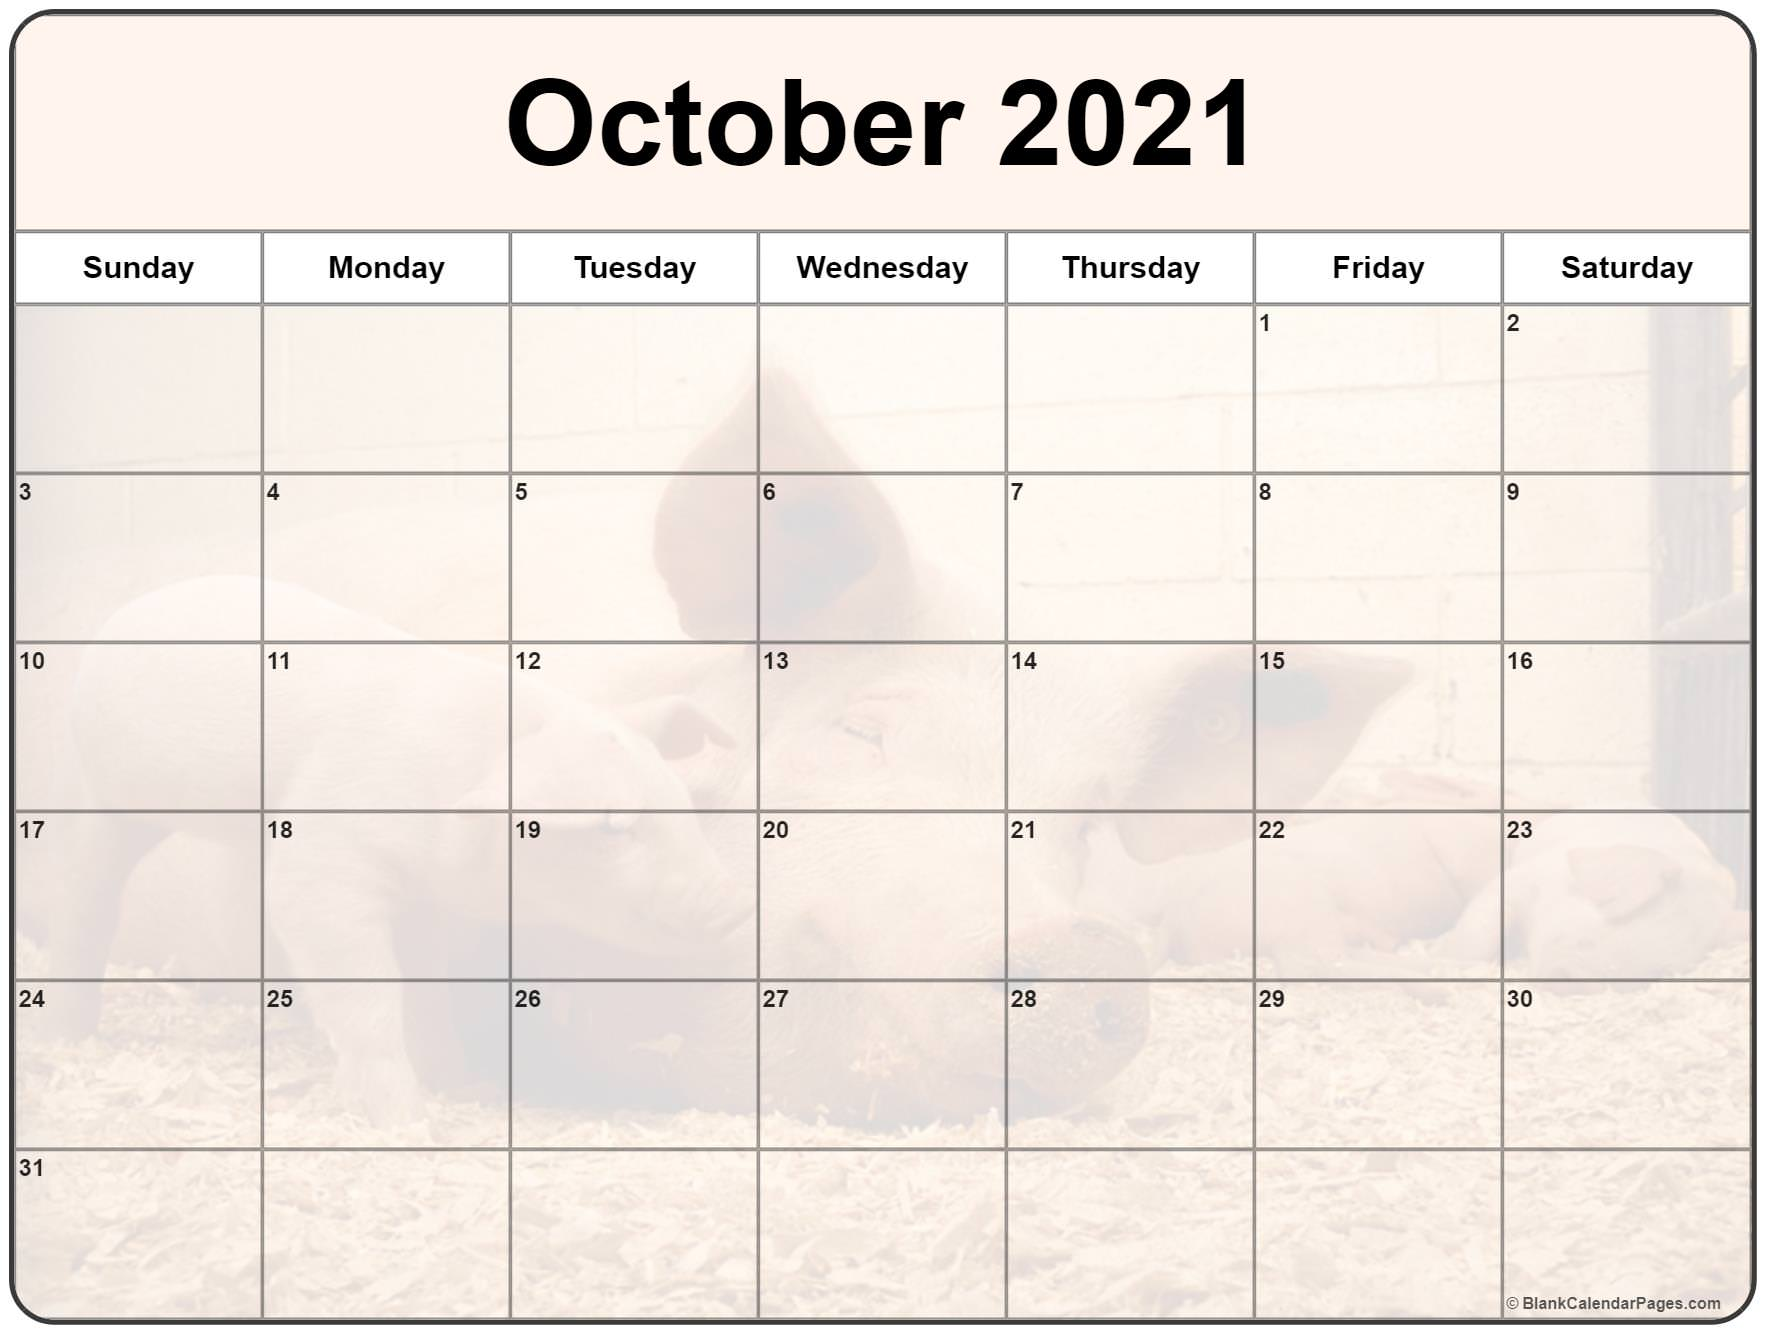 October 2021 printable calendar with cute piglet filters